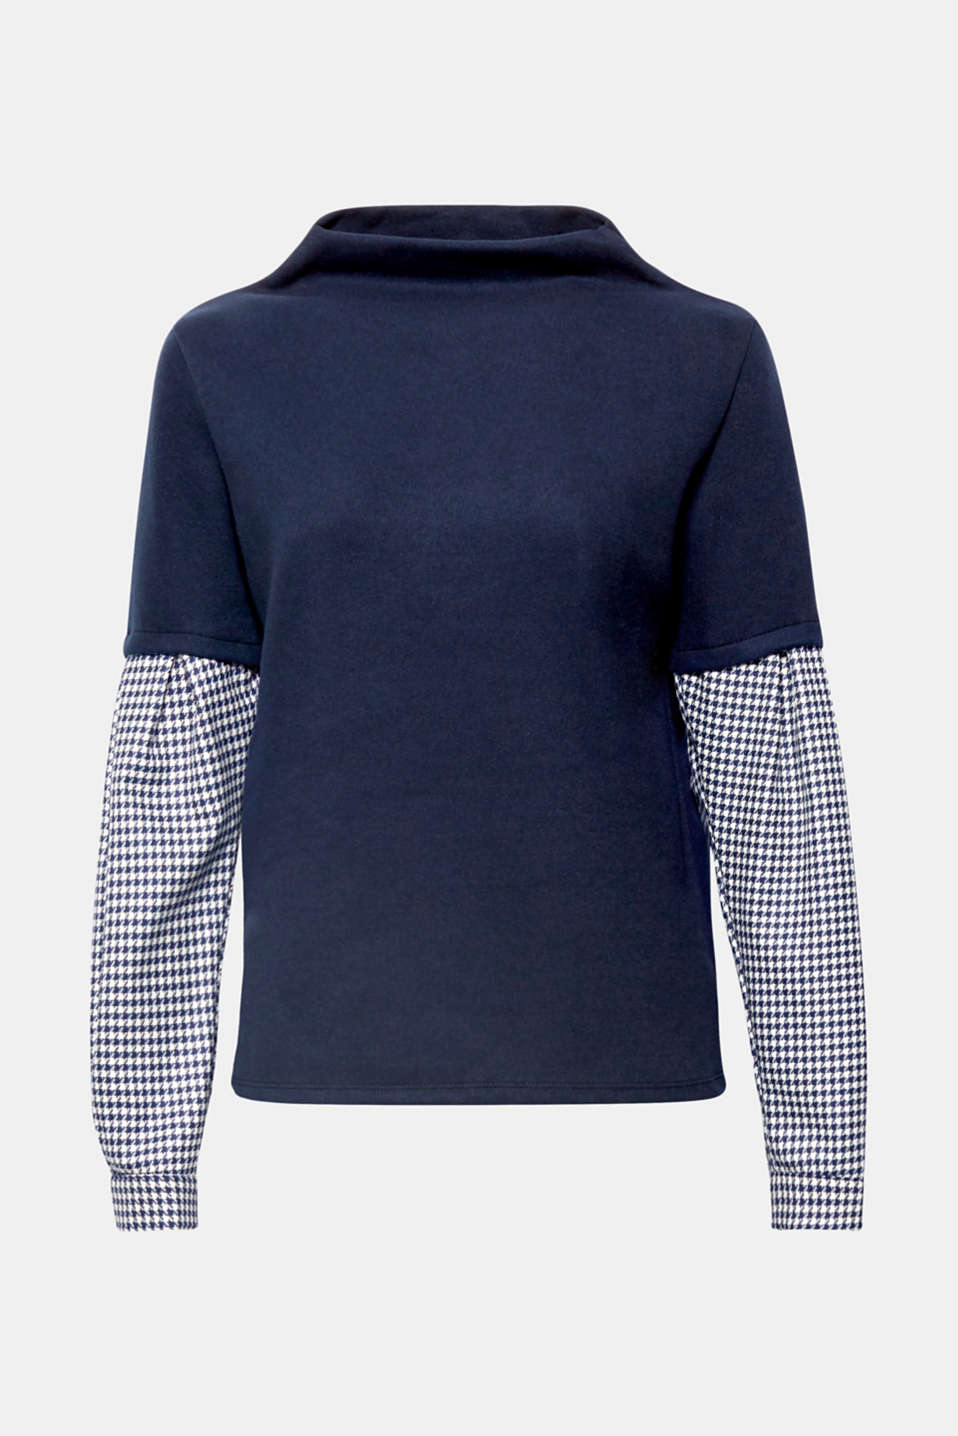 Long sleeve top in a new look:  This one comes in a trendy 2-in-1 style with set-in patterned sleeves and a wide turtleneck collar.